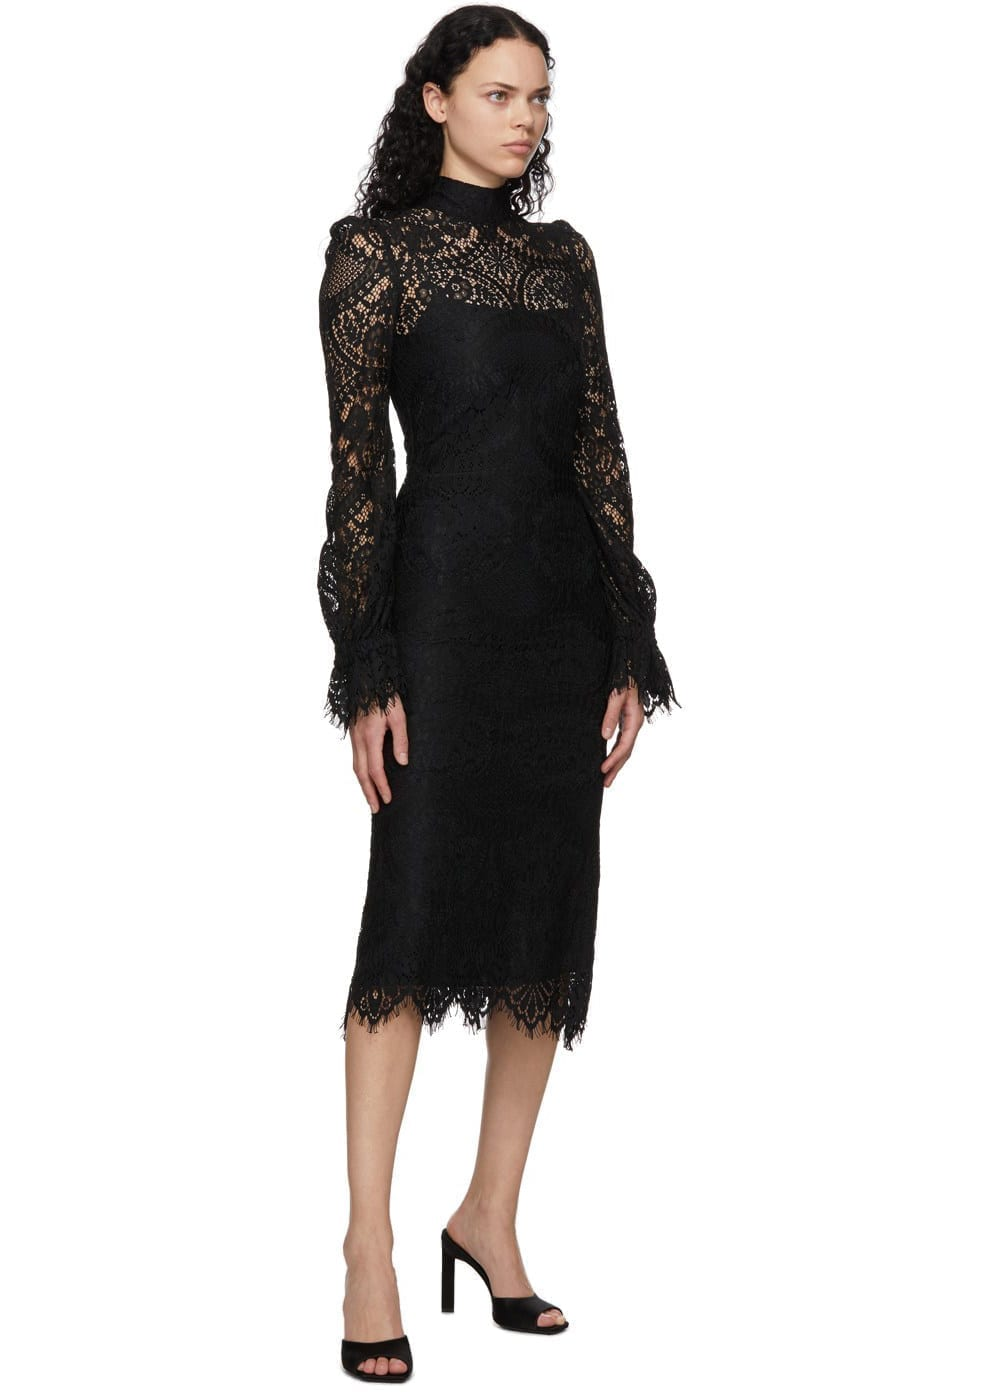 WANDERING Black Lace Mid-Length Dress